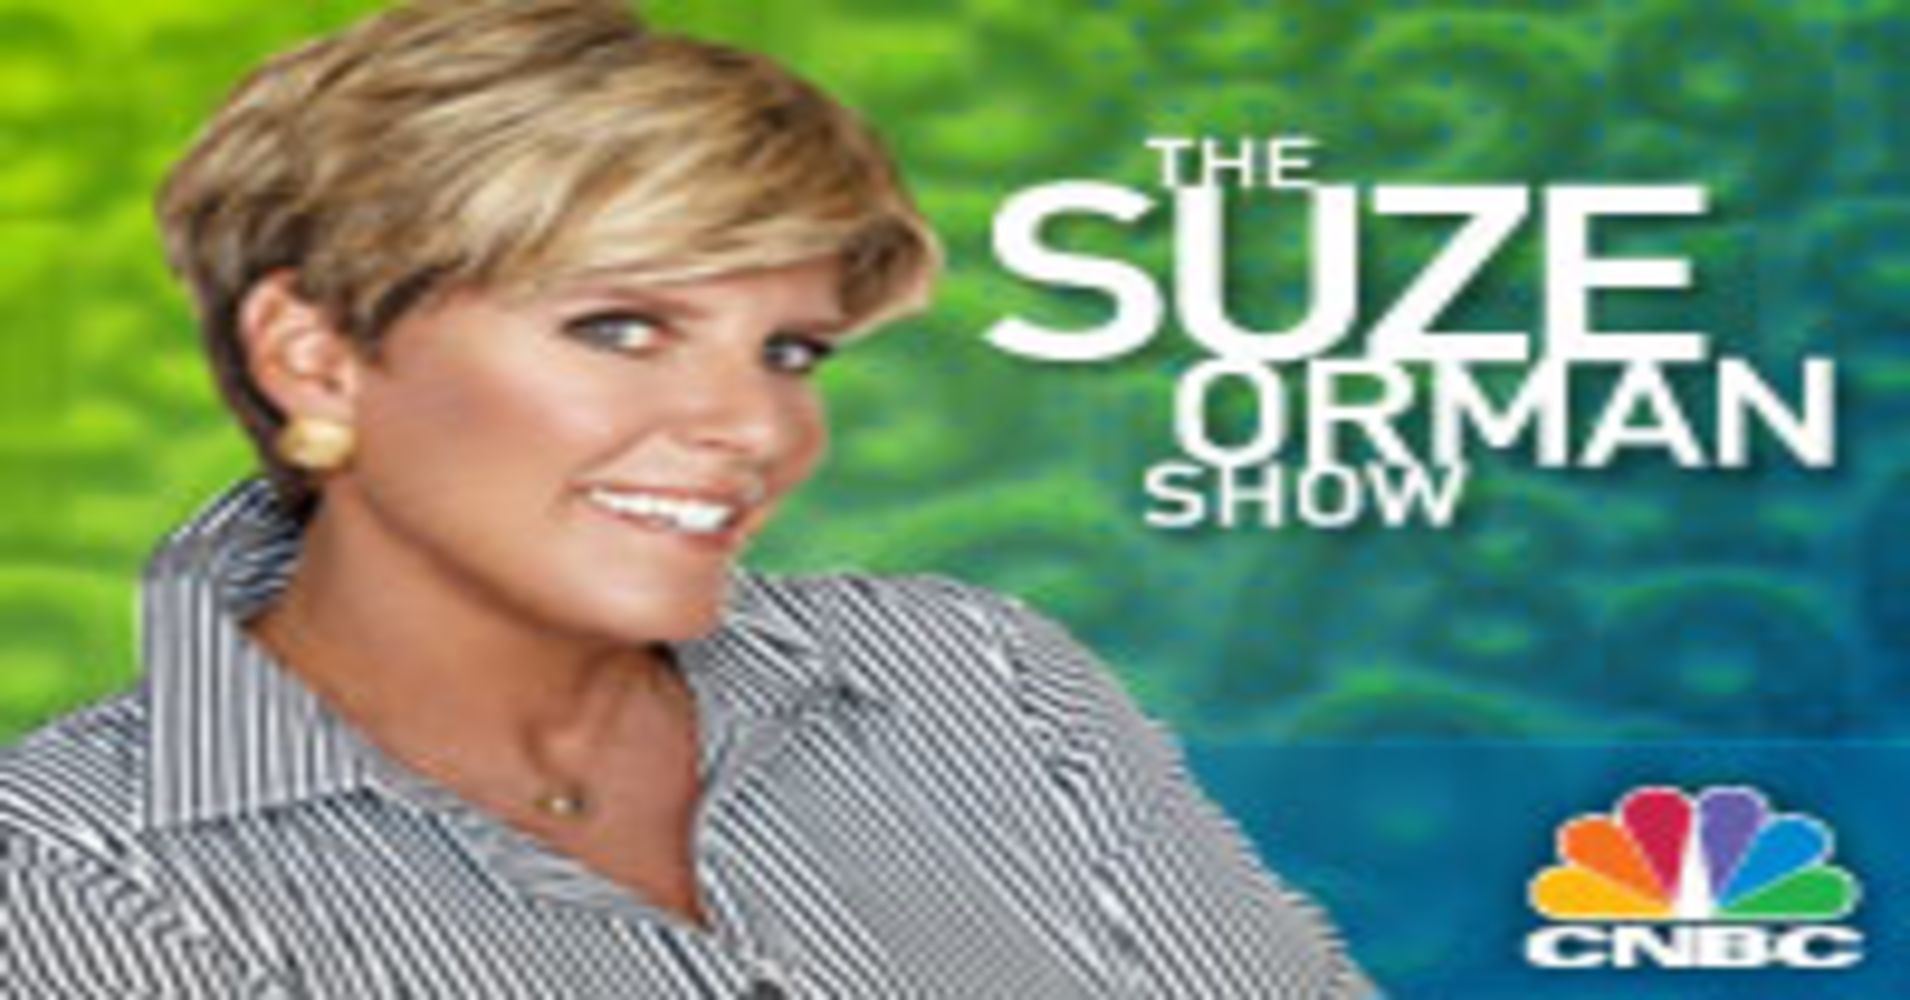 Suze Orman Budget Spreadsheet Throughout Free Download! Suze's Expense Sheet